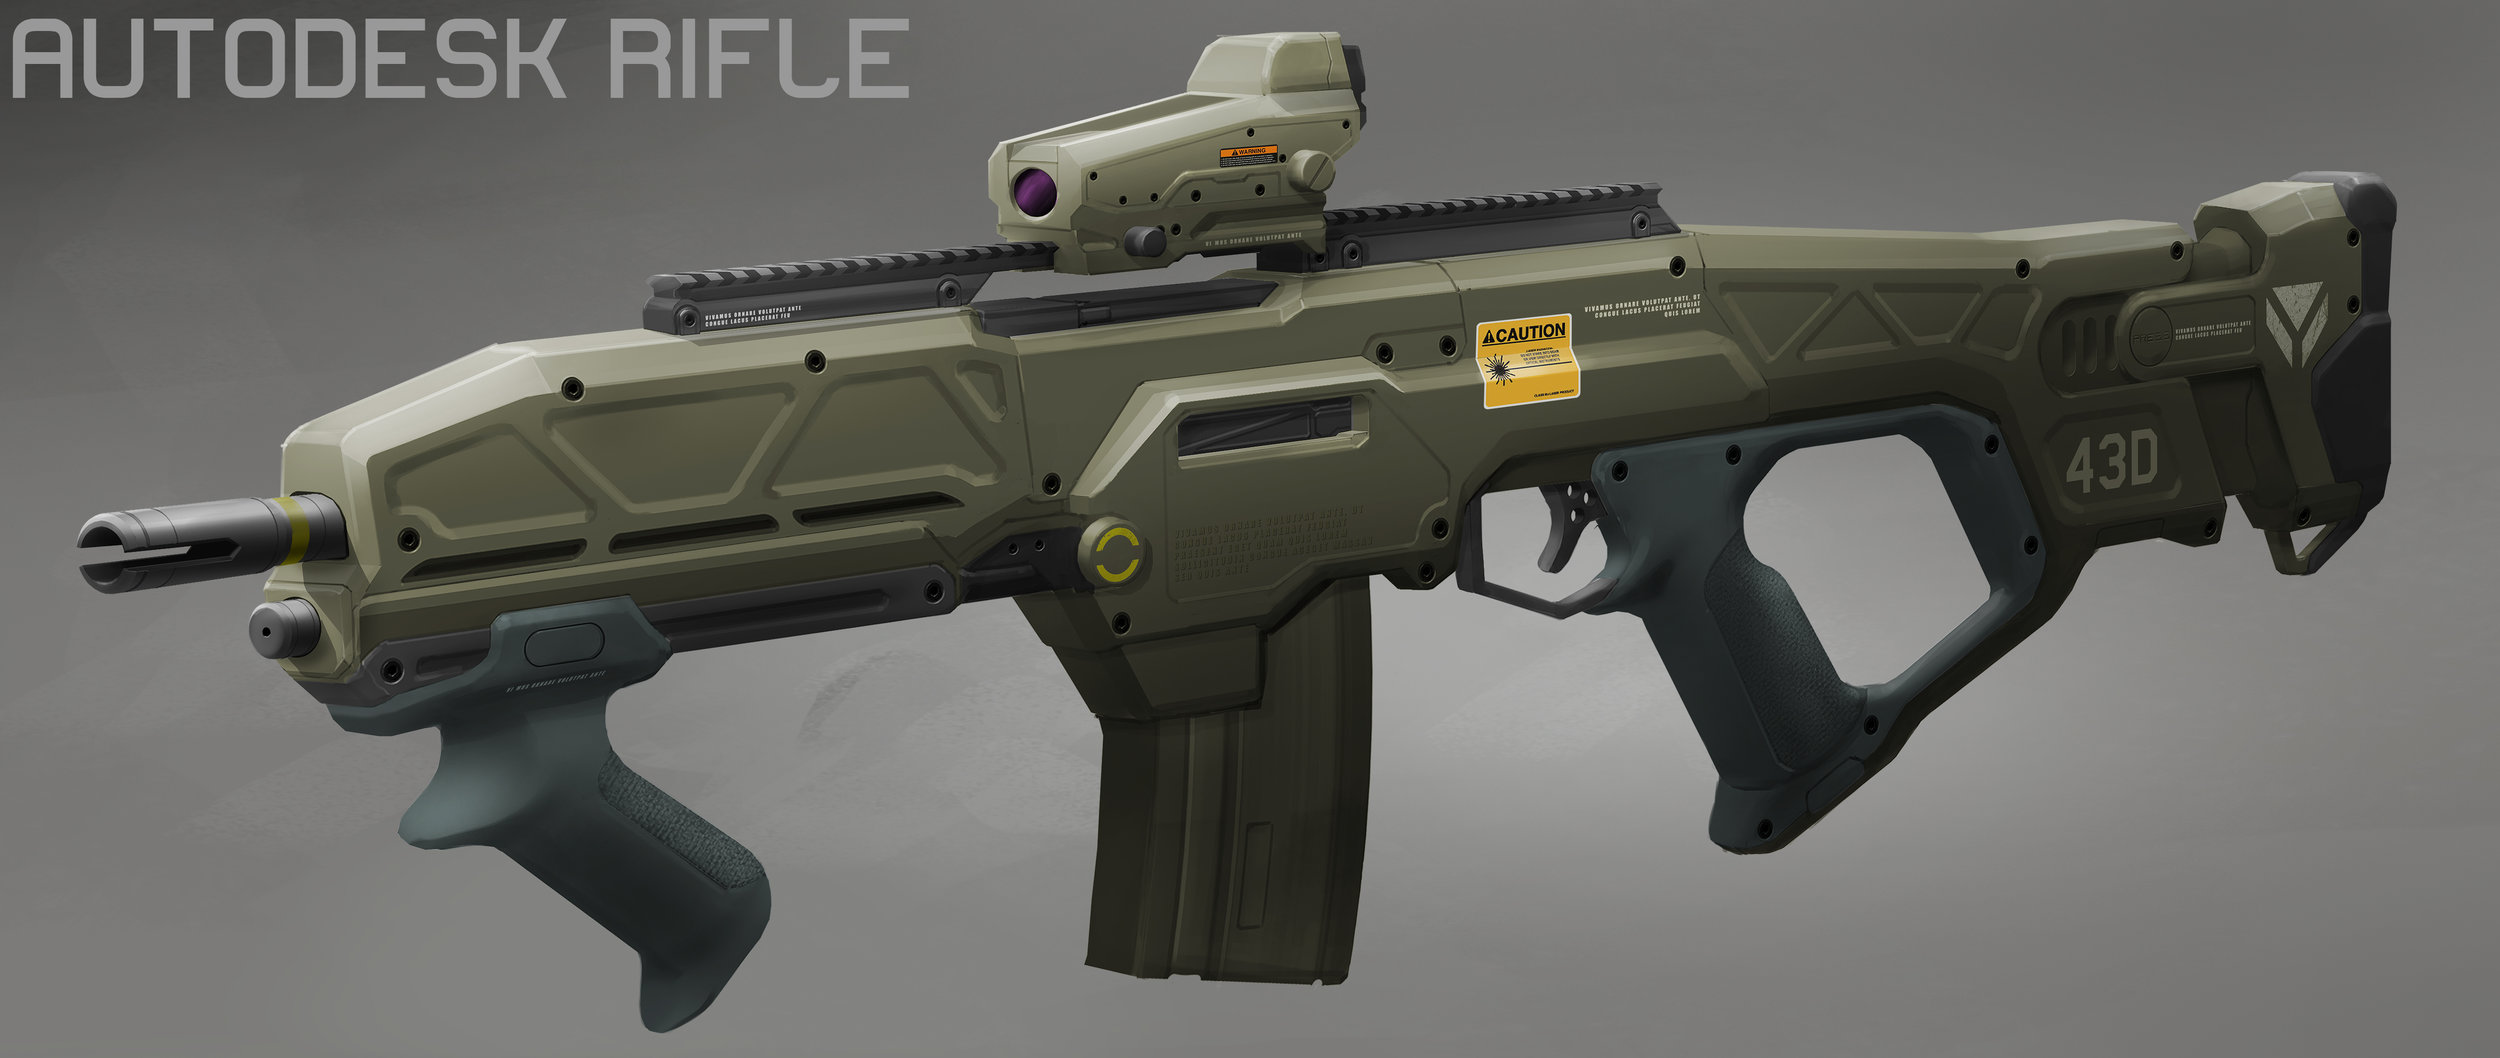 Autodesk_Rifle_Final_Quarter_Color.jpg